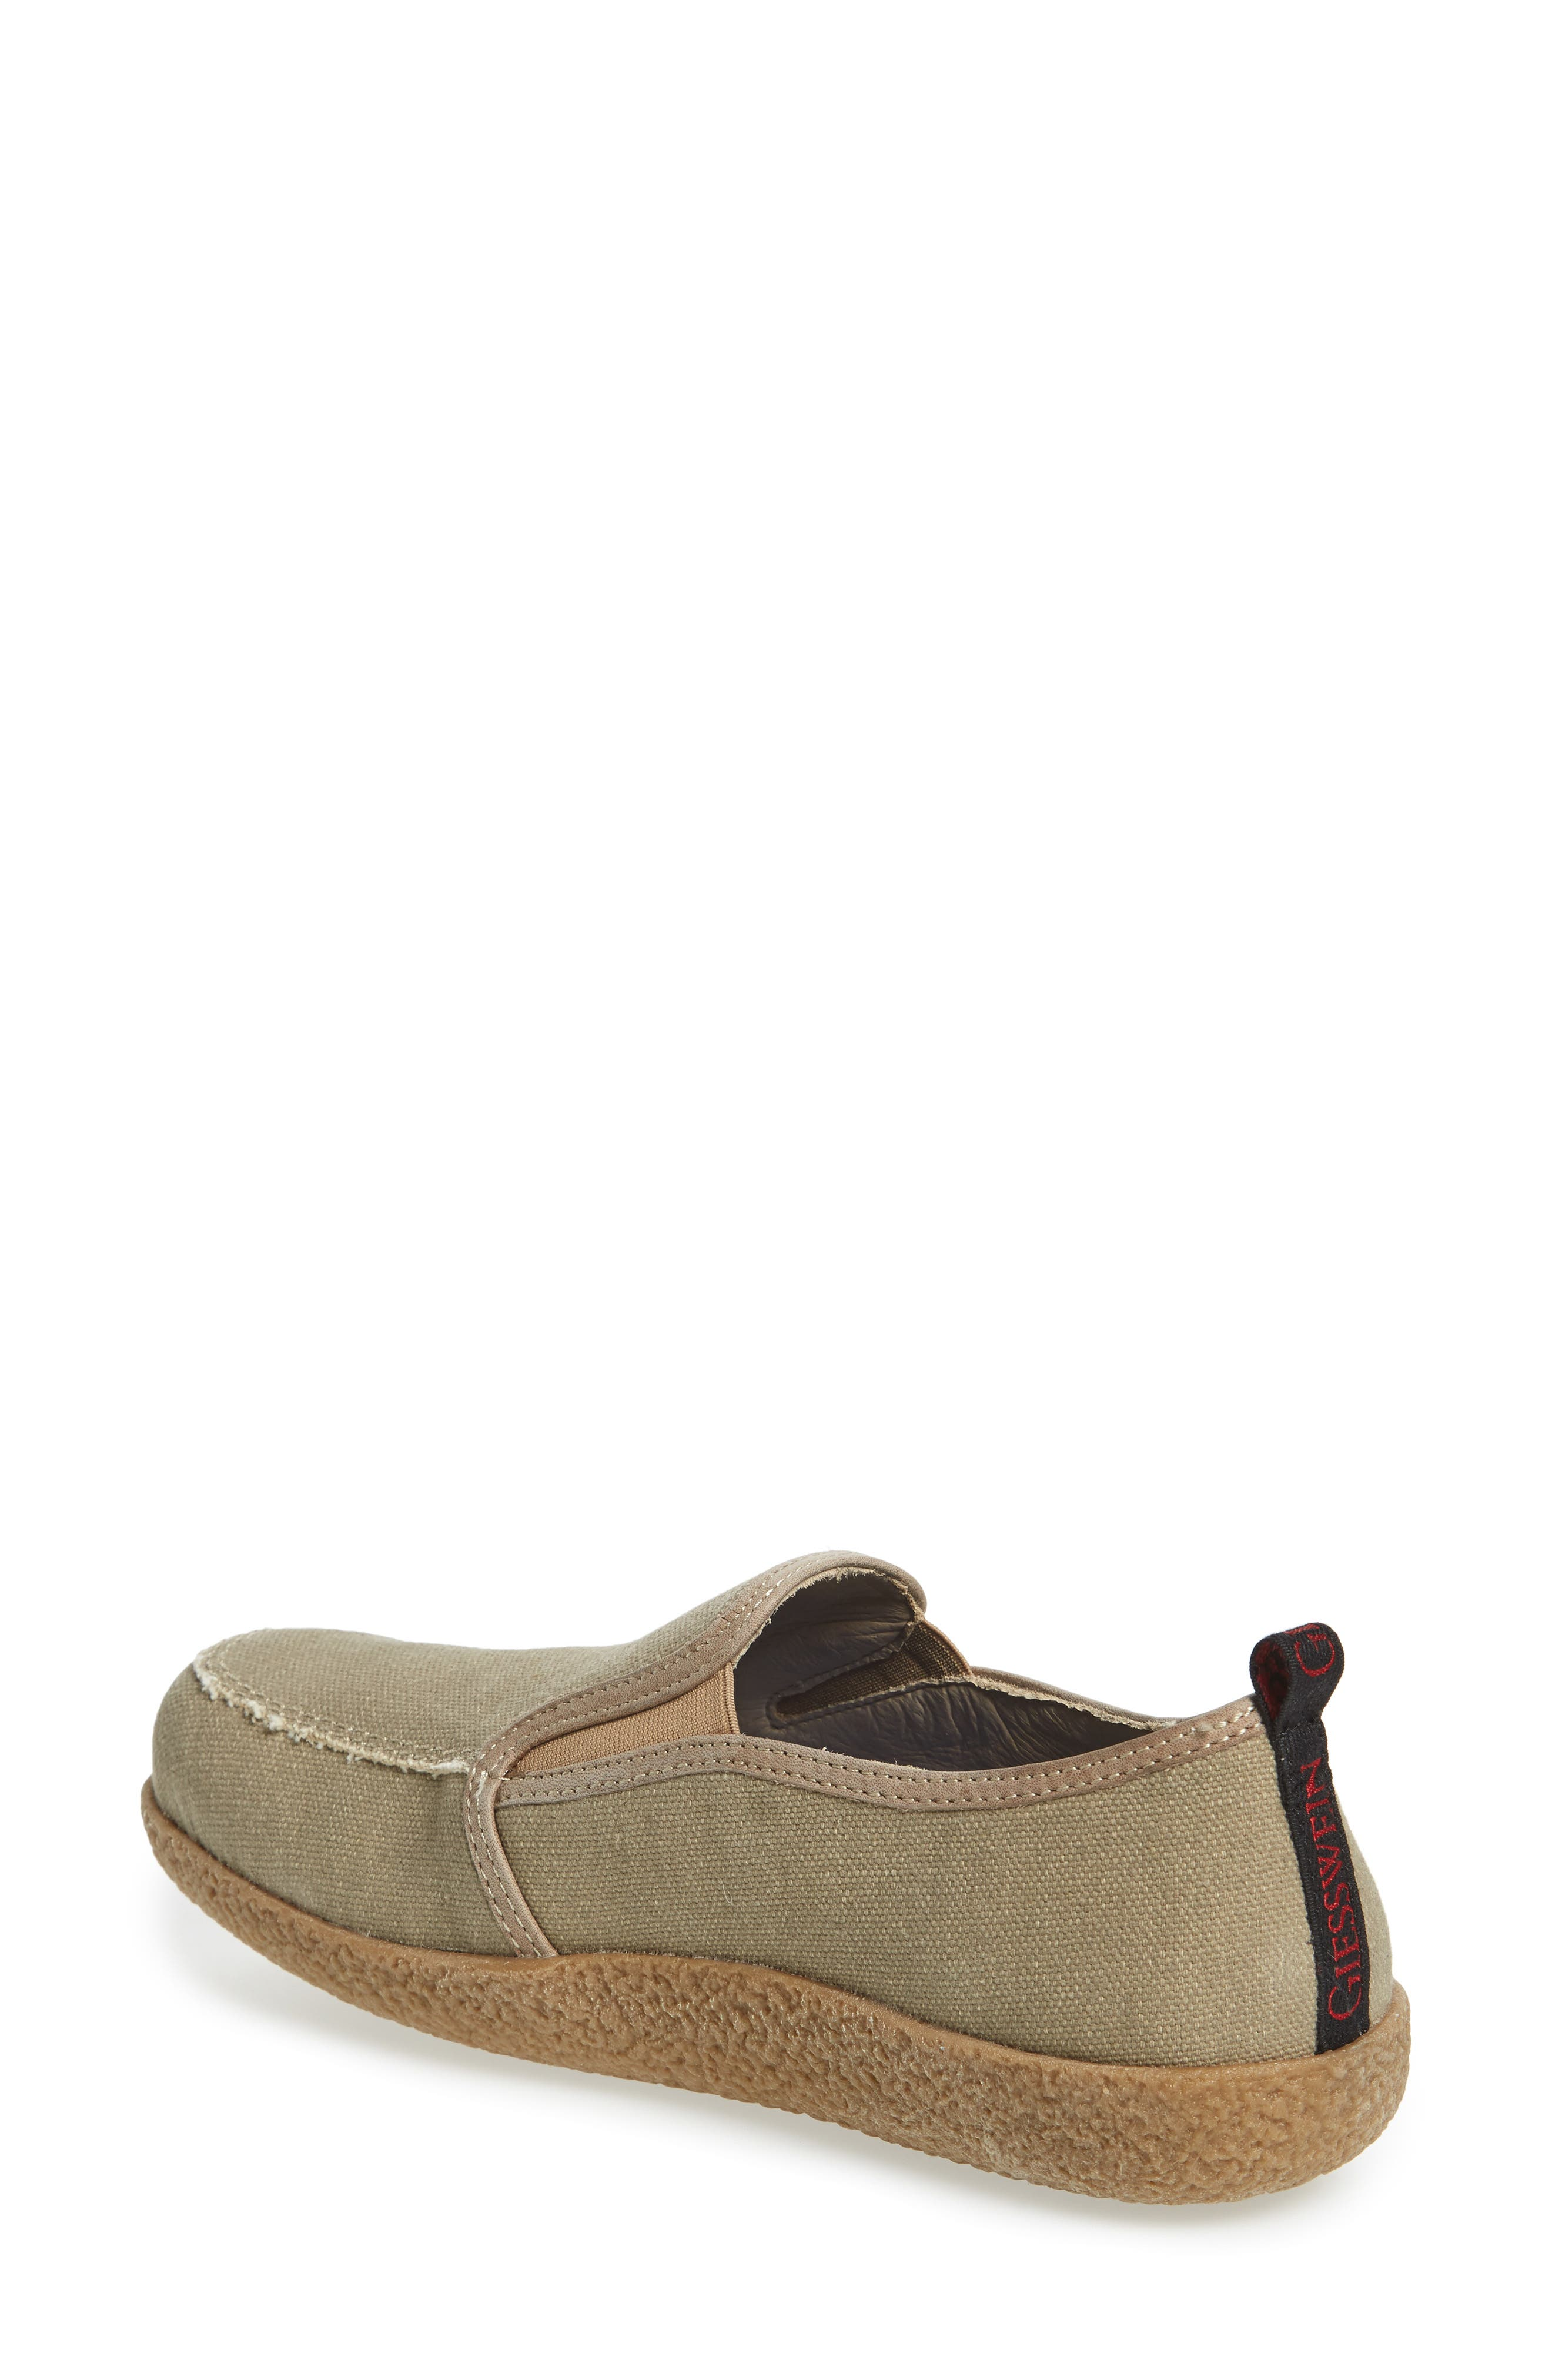 Reith Loafer,                             Alternate thumbnail 2, color,                             250